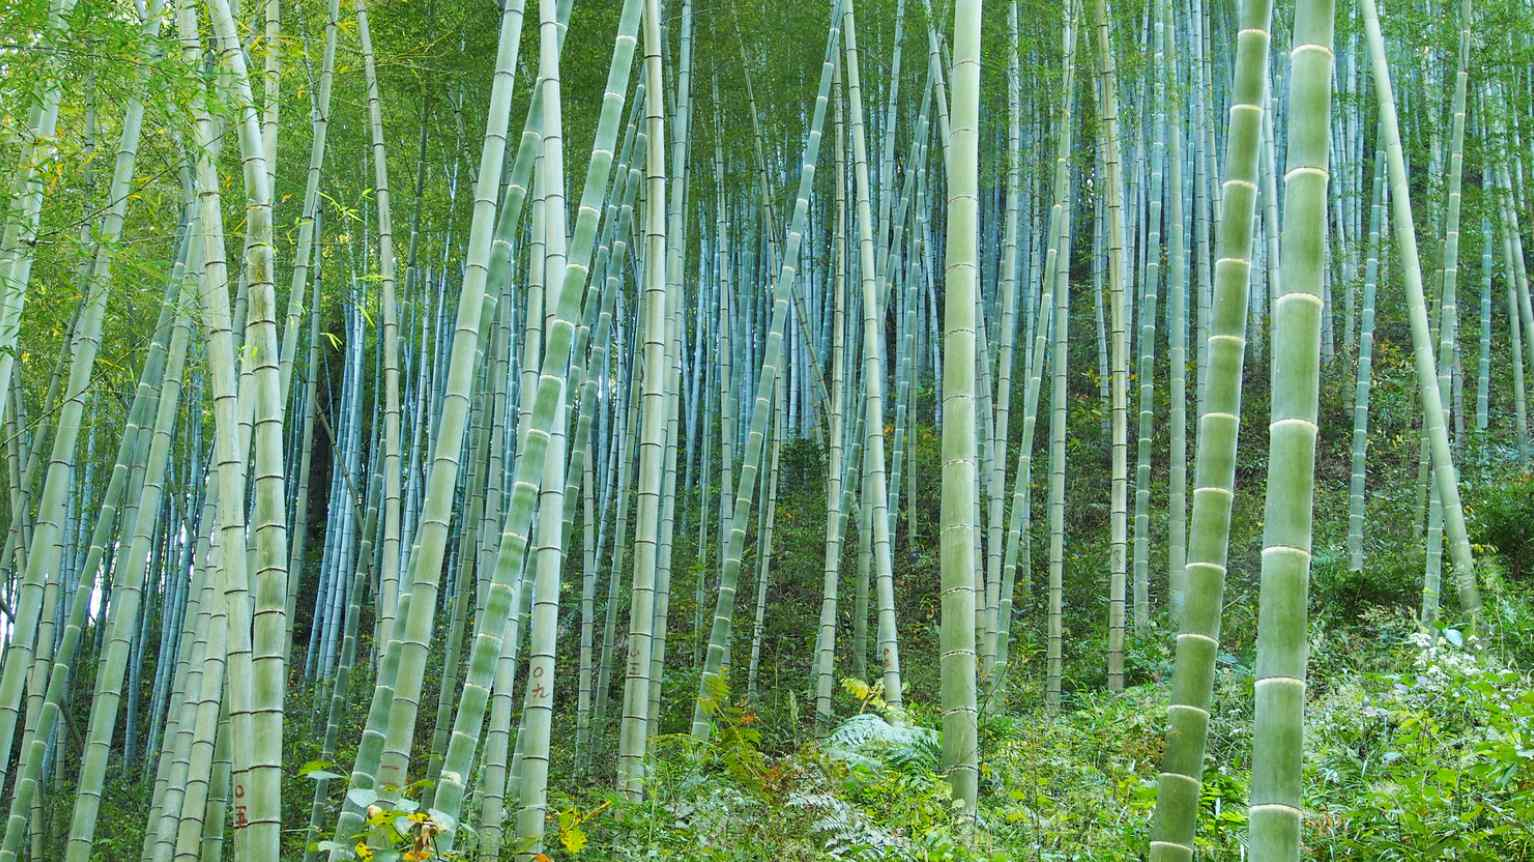 Bamboo for erosion control